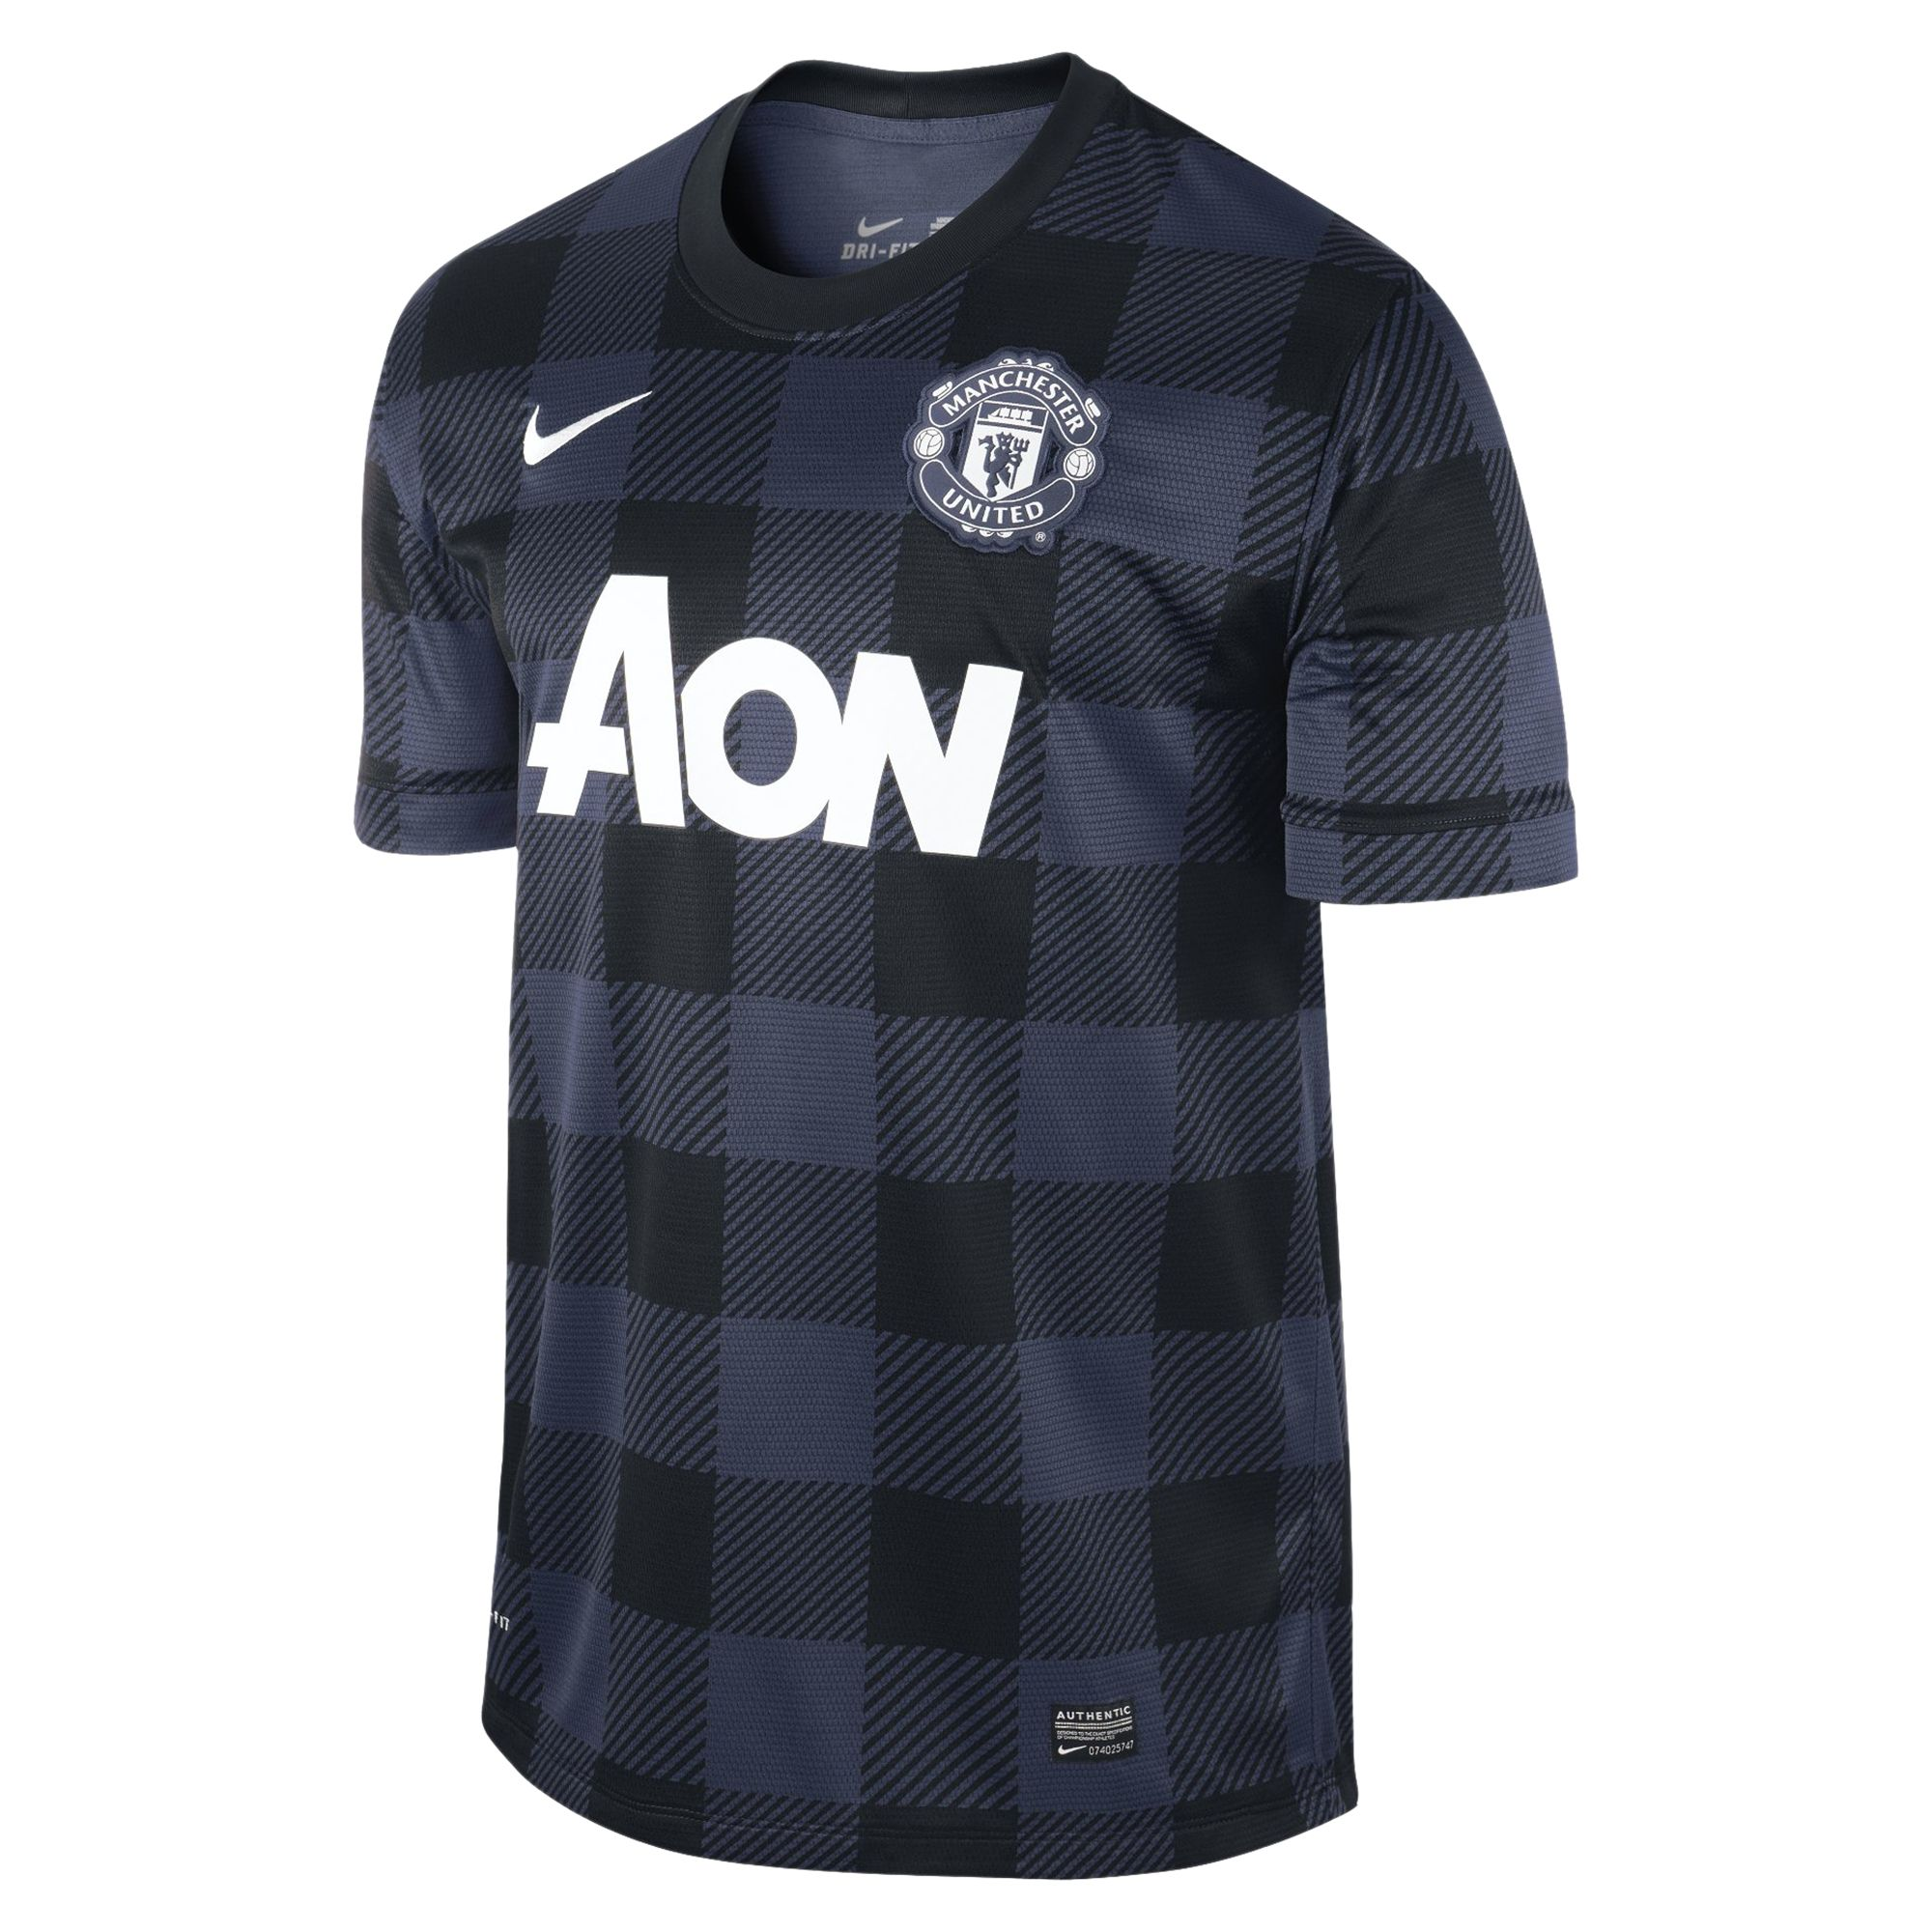 Design t shirt manchester united - Find This Pin And More On Football Shirts Nike Manchester United